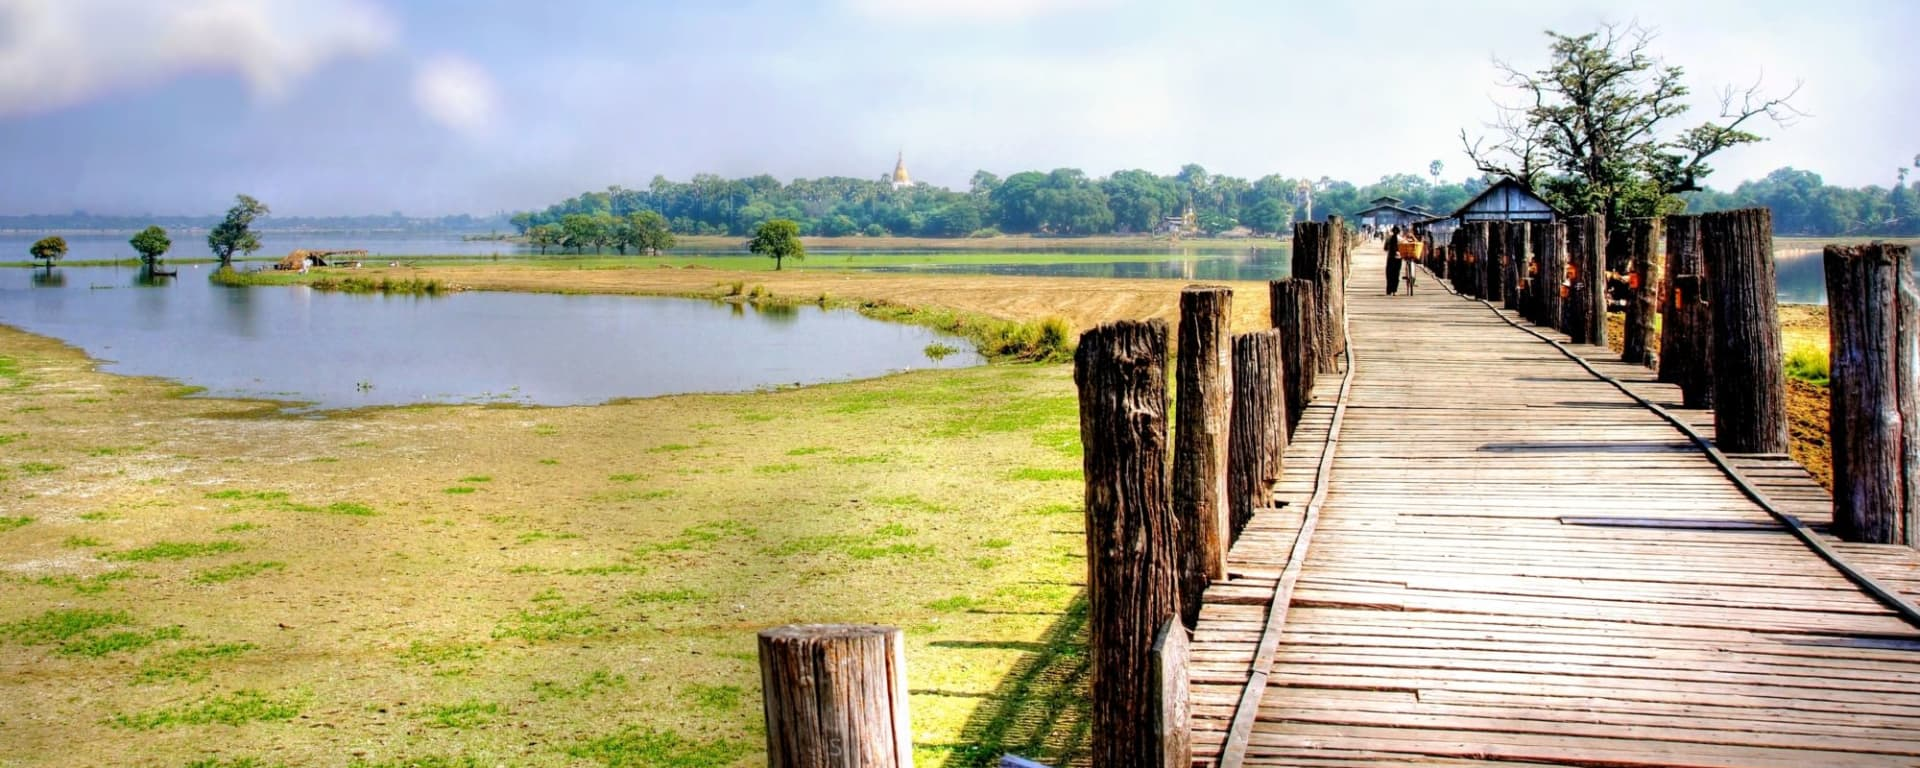 Voyages en Myanmar | Vacances en Asie par tourasia: Mandalay Amarapura U-Thein Bridge